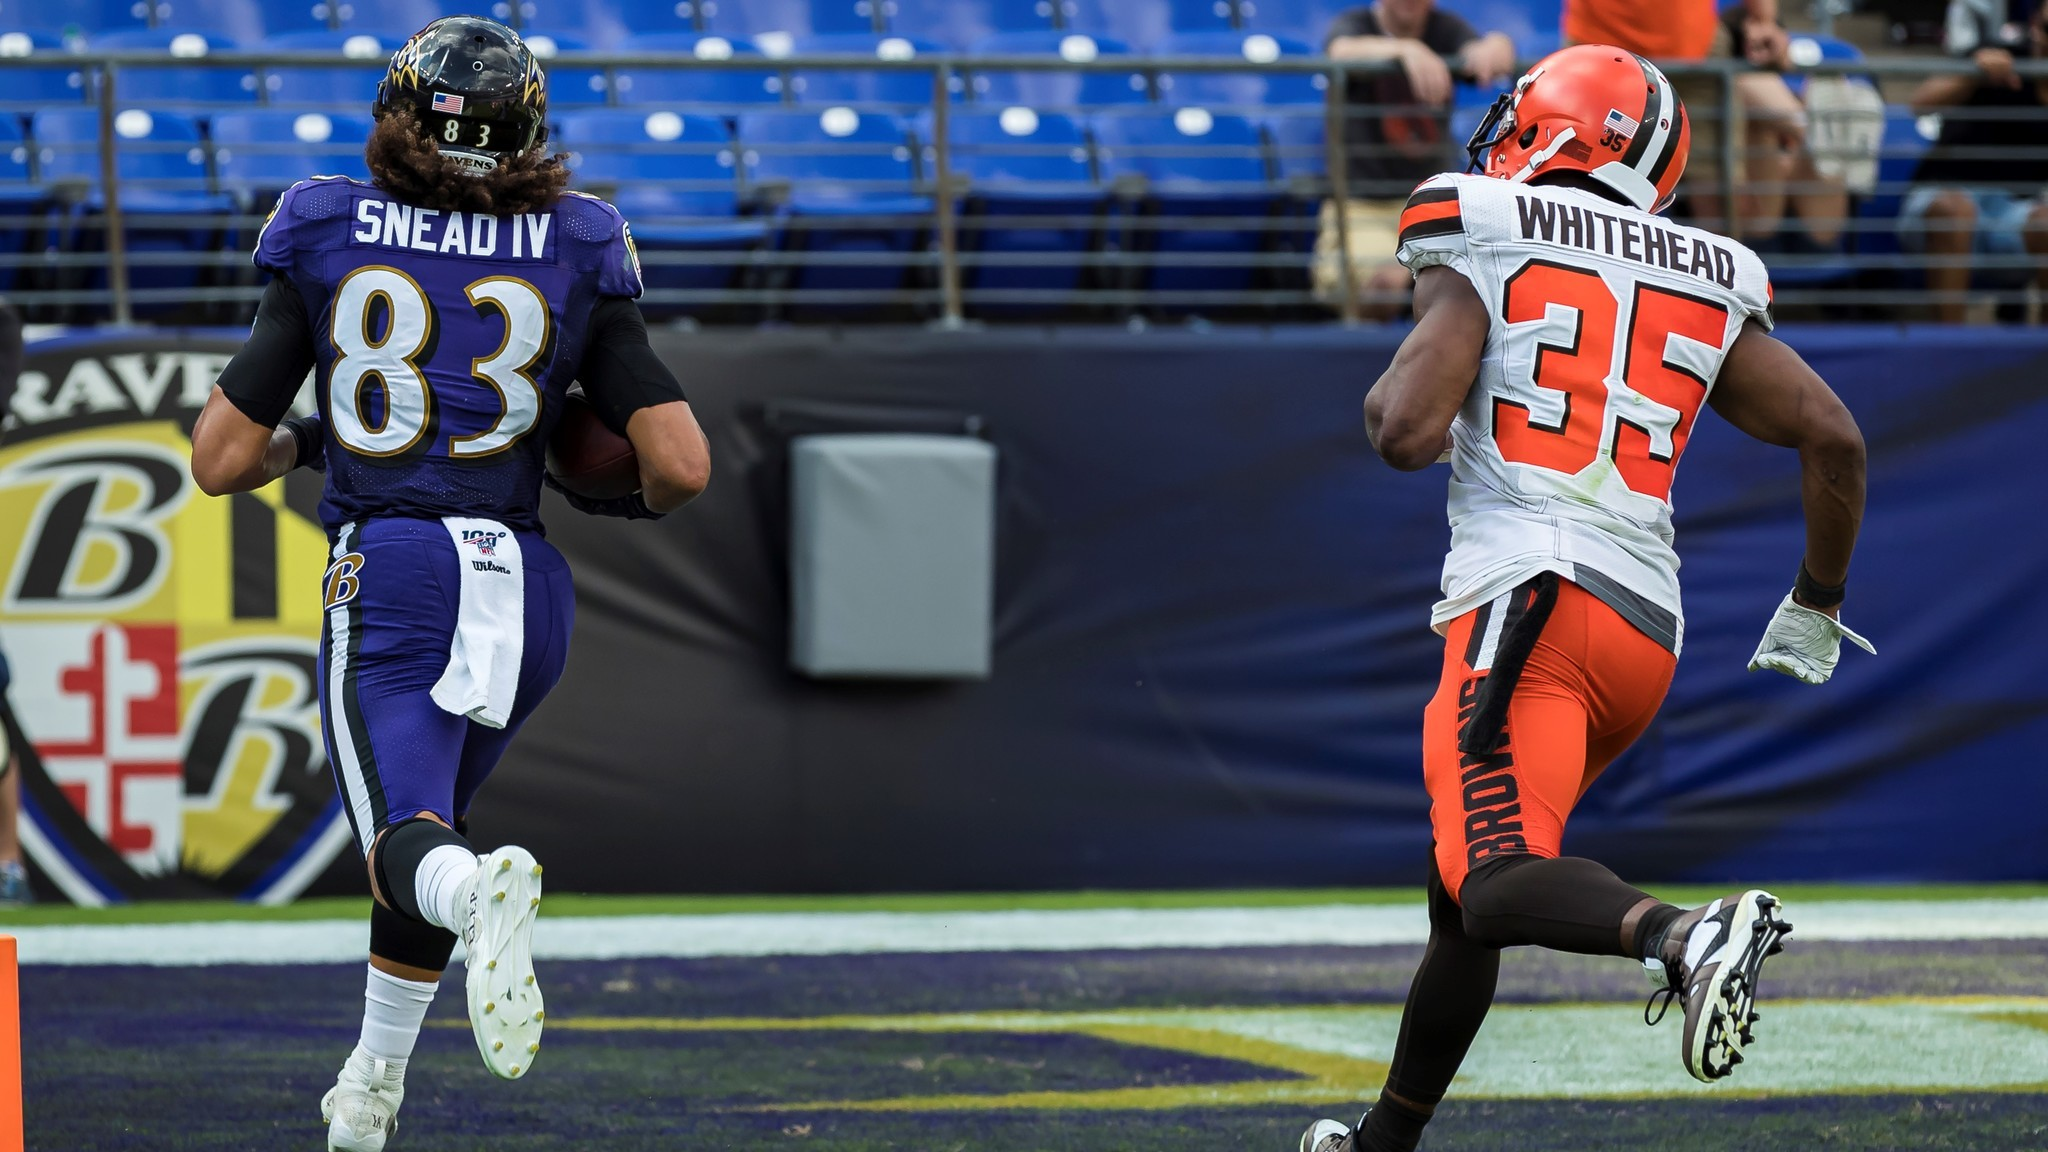 Browns cut Jermaine Whitehead after online meltdown